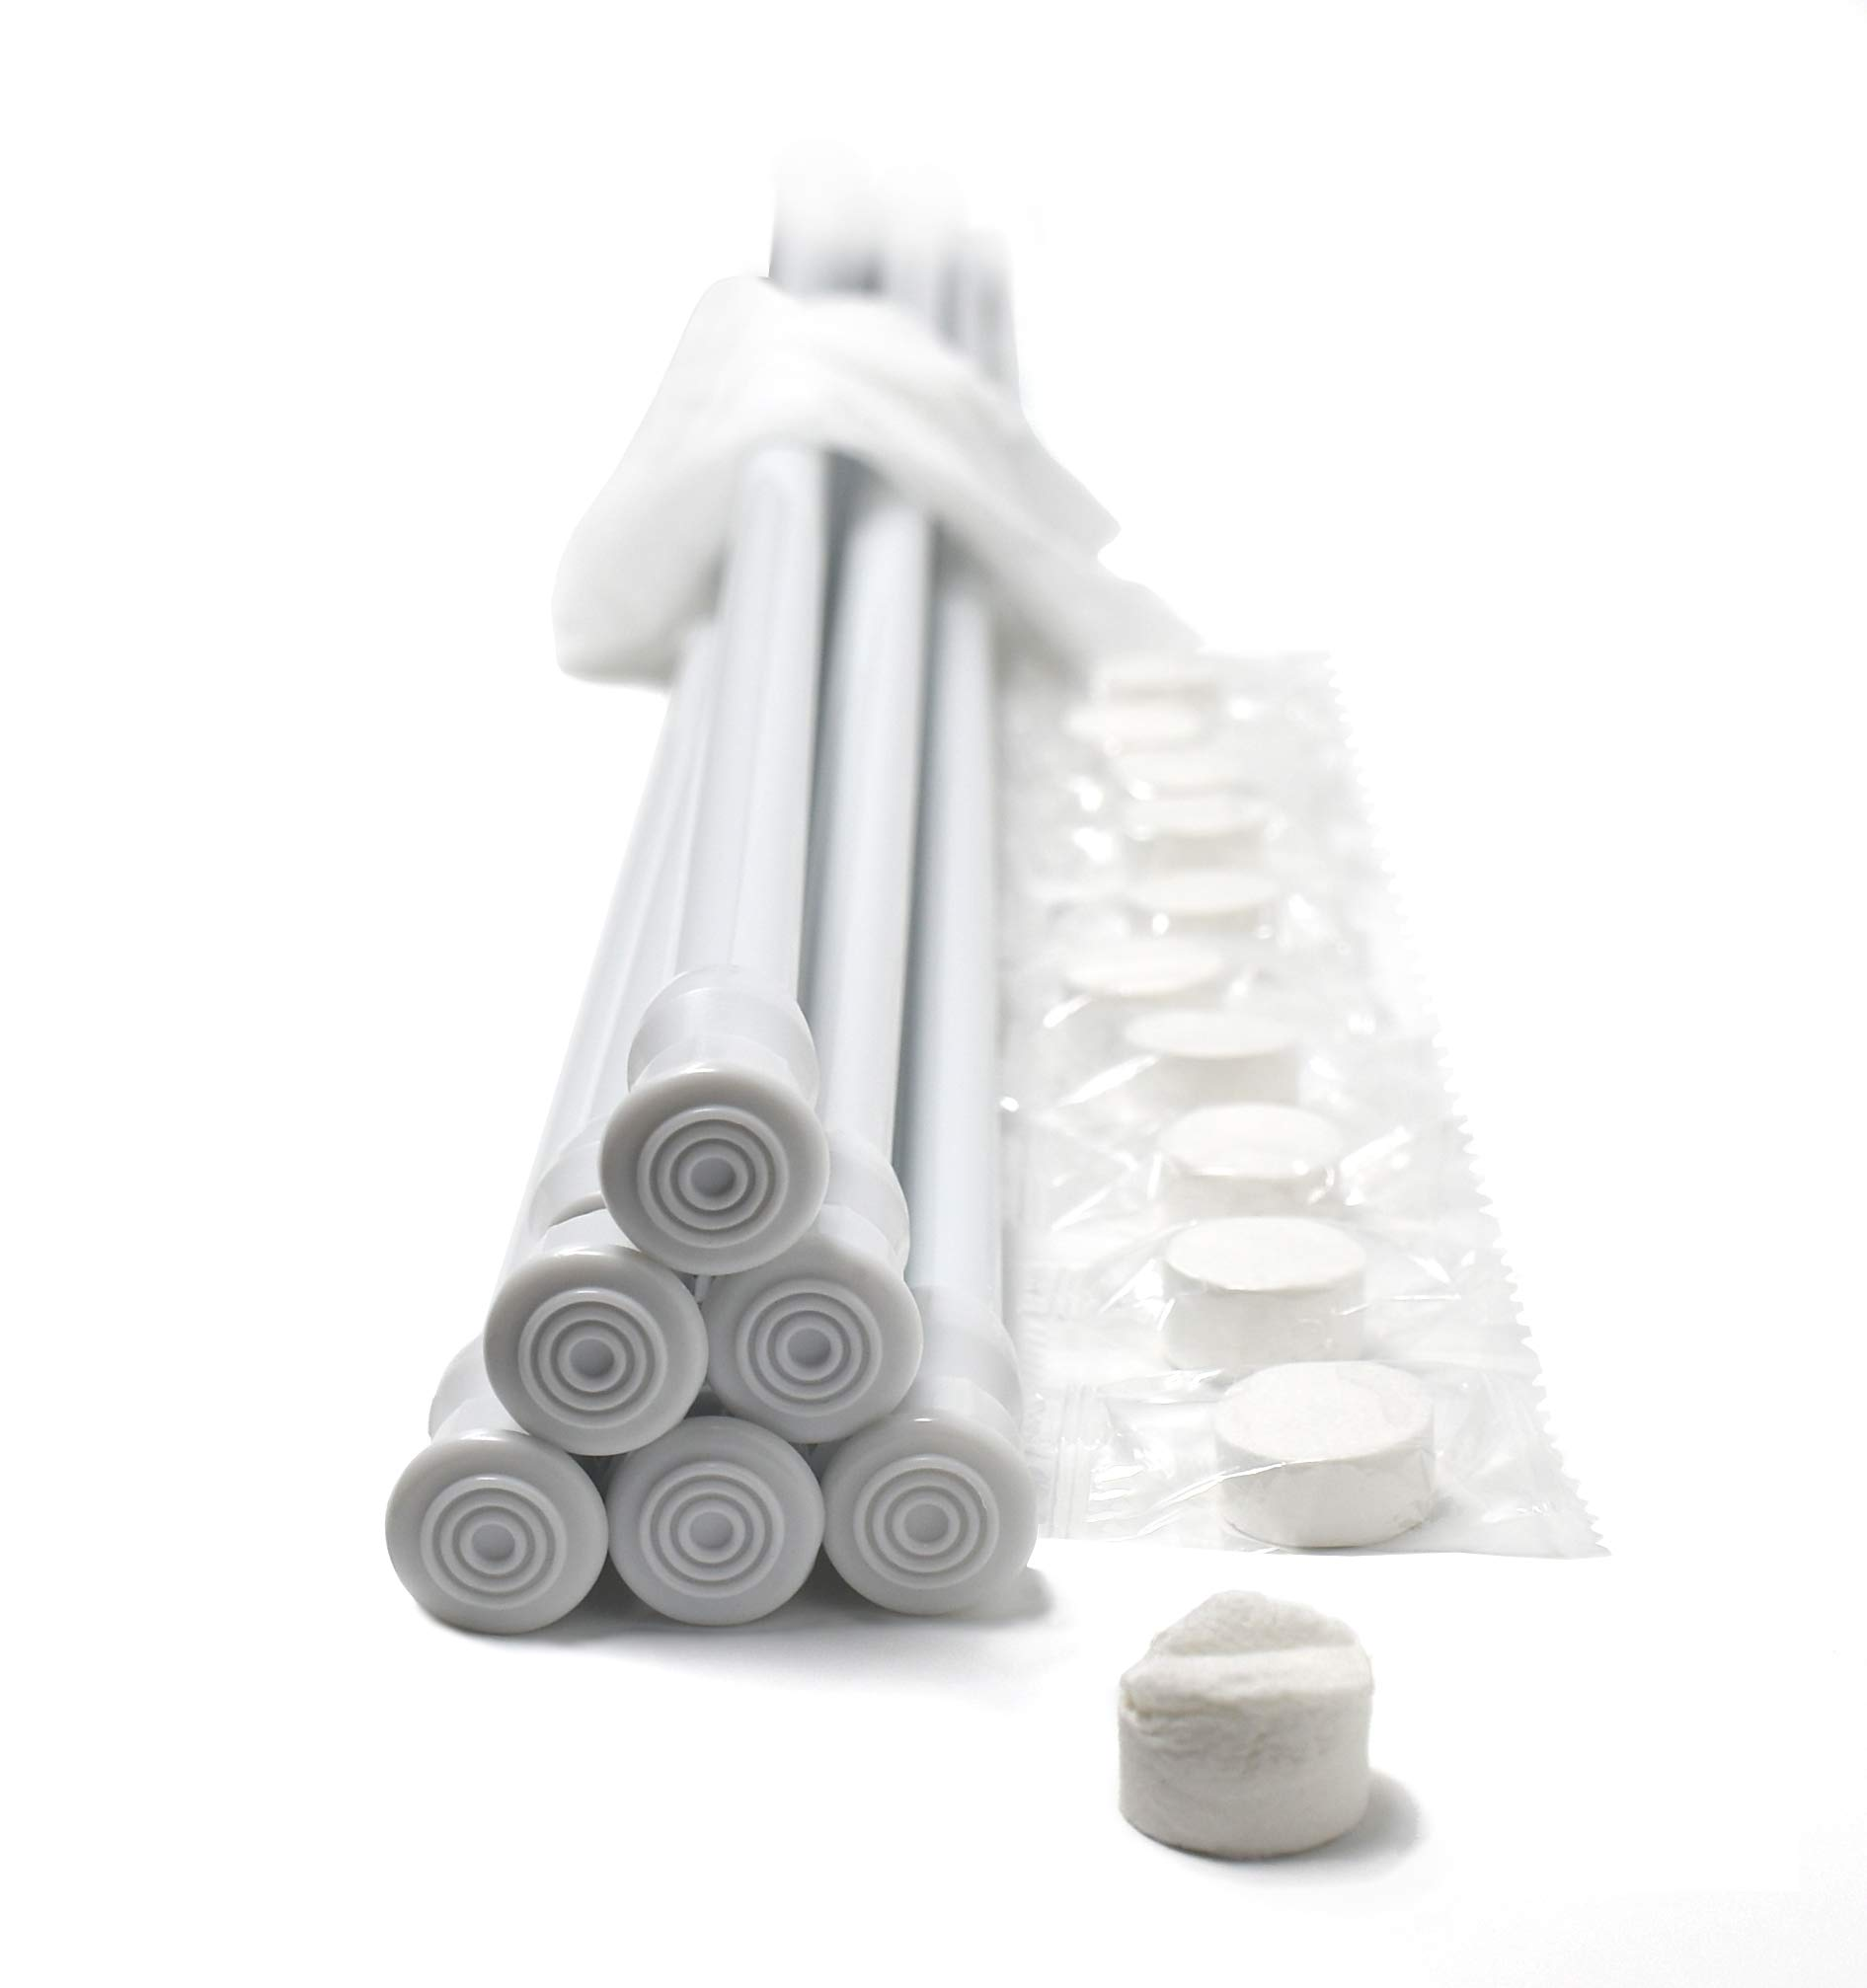 Danily Pack of 6 Cupboard Bars Adjustable Spring Loaded Tension Curtain Rods 28 to 48 Inches, White, Comes with Multipurpose Compressed Towels by Danily